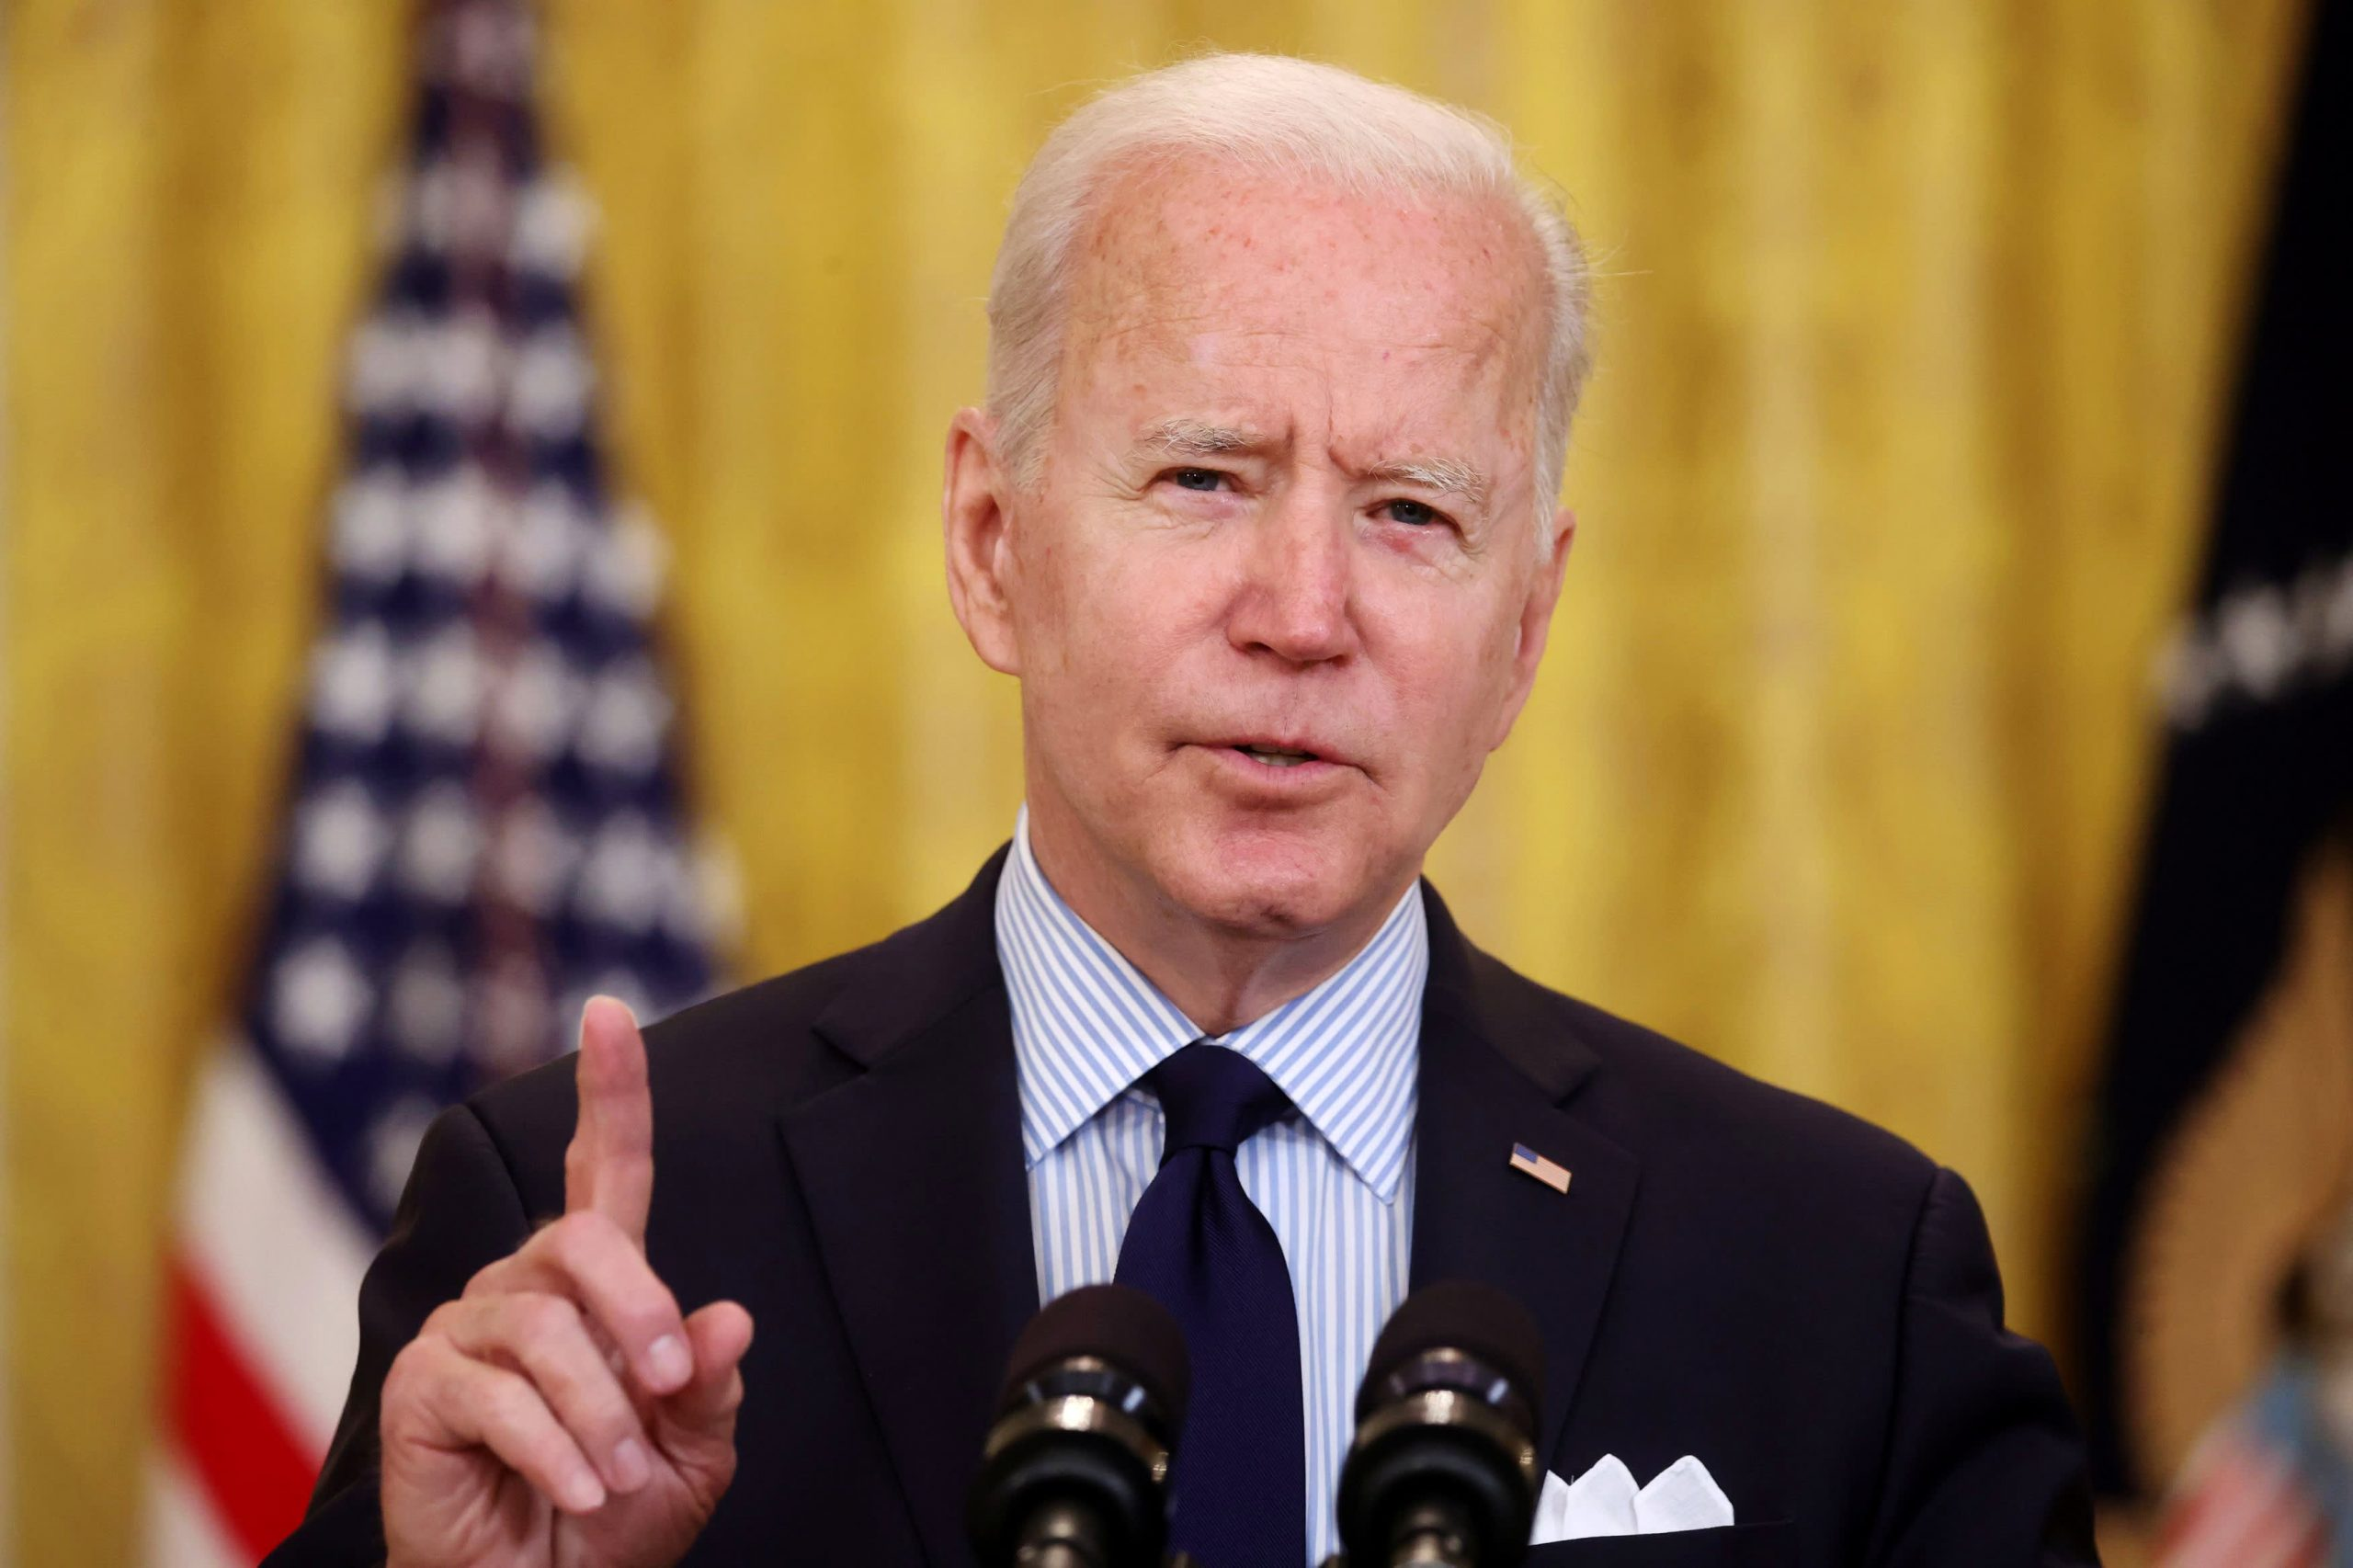 Biden puts anti-corruption effort at center of foreign policy, with crypto, cyber focus